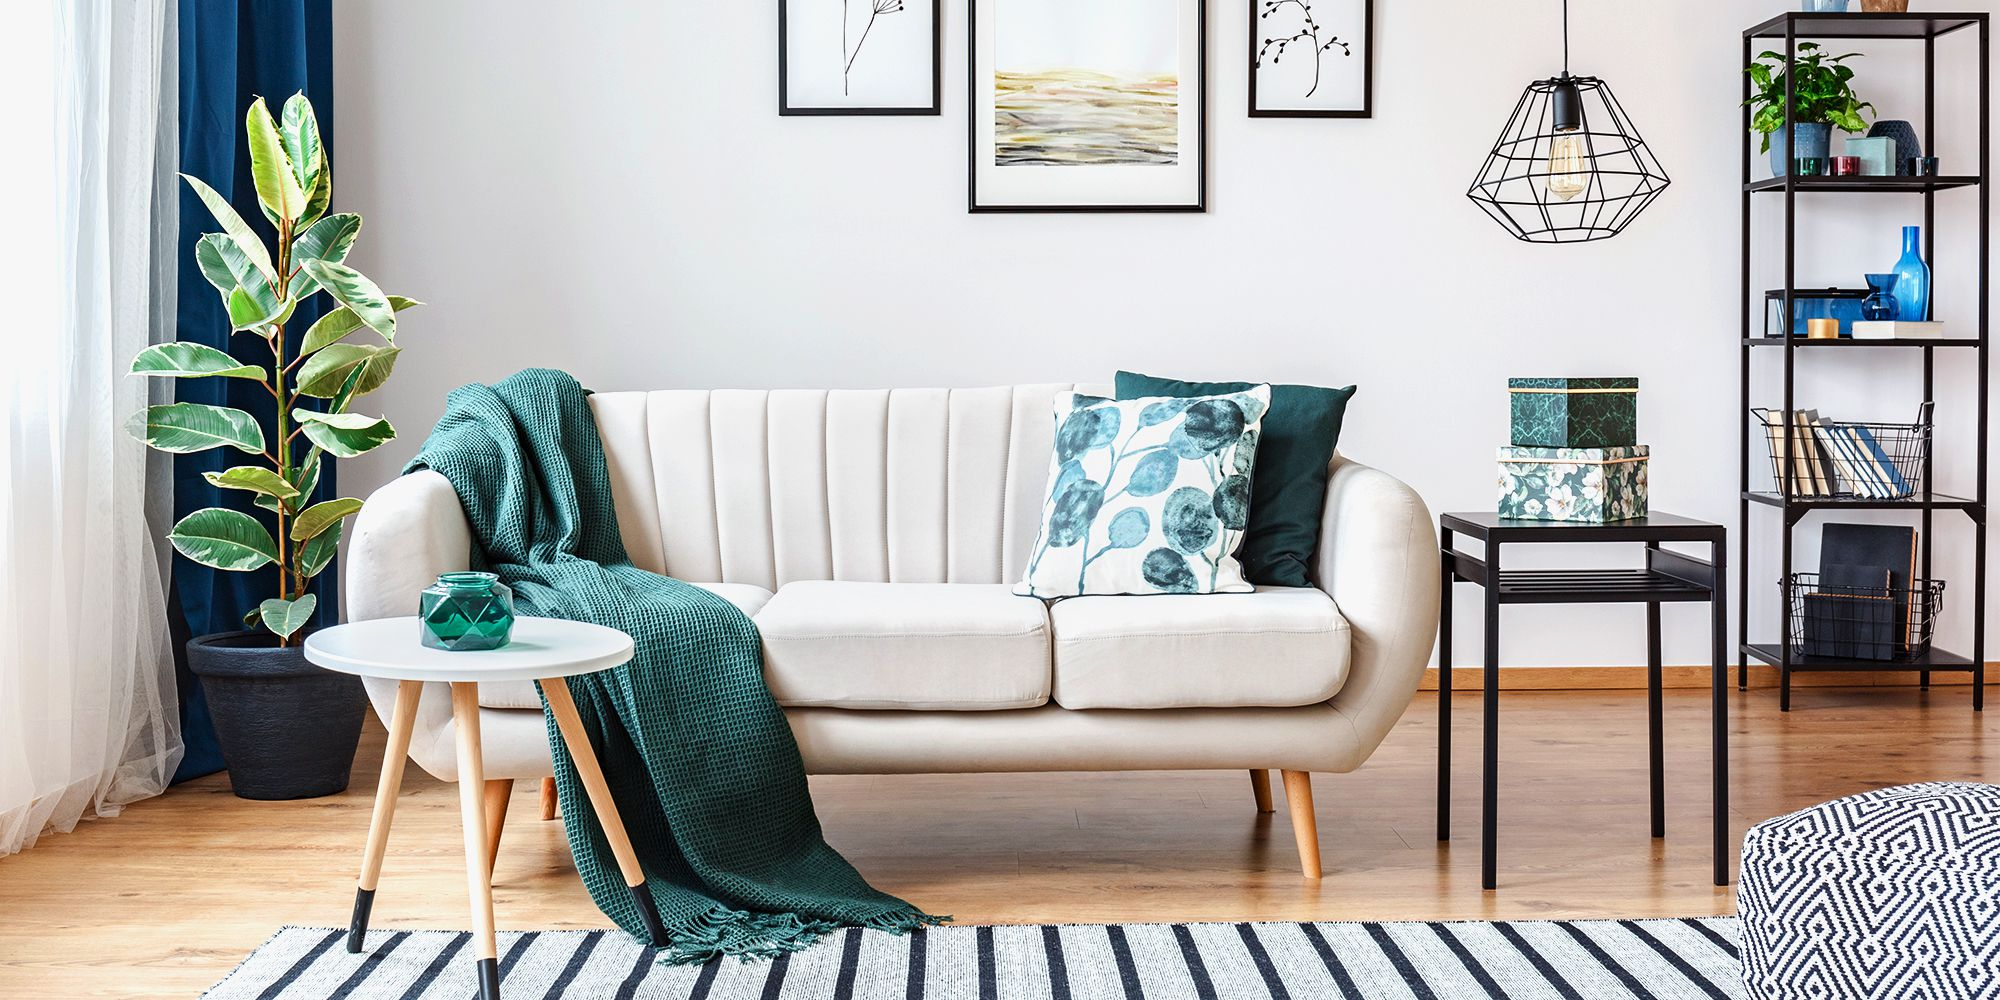 15 Best Small Apartment Decor Ideas for 2019 - How to Decorate a